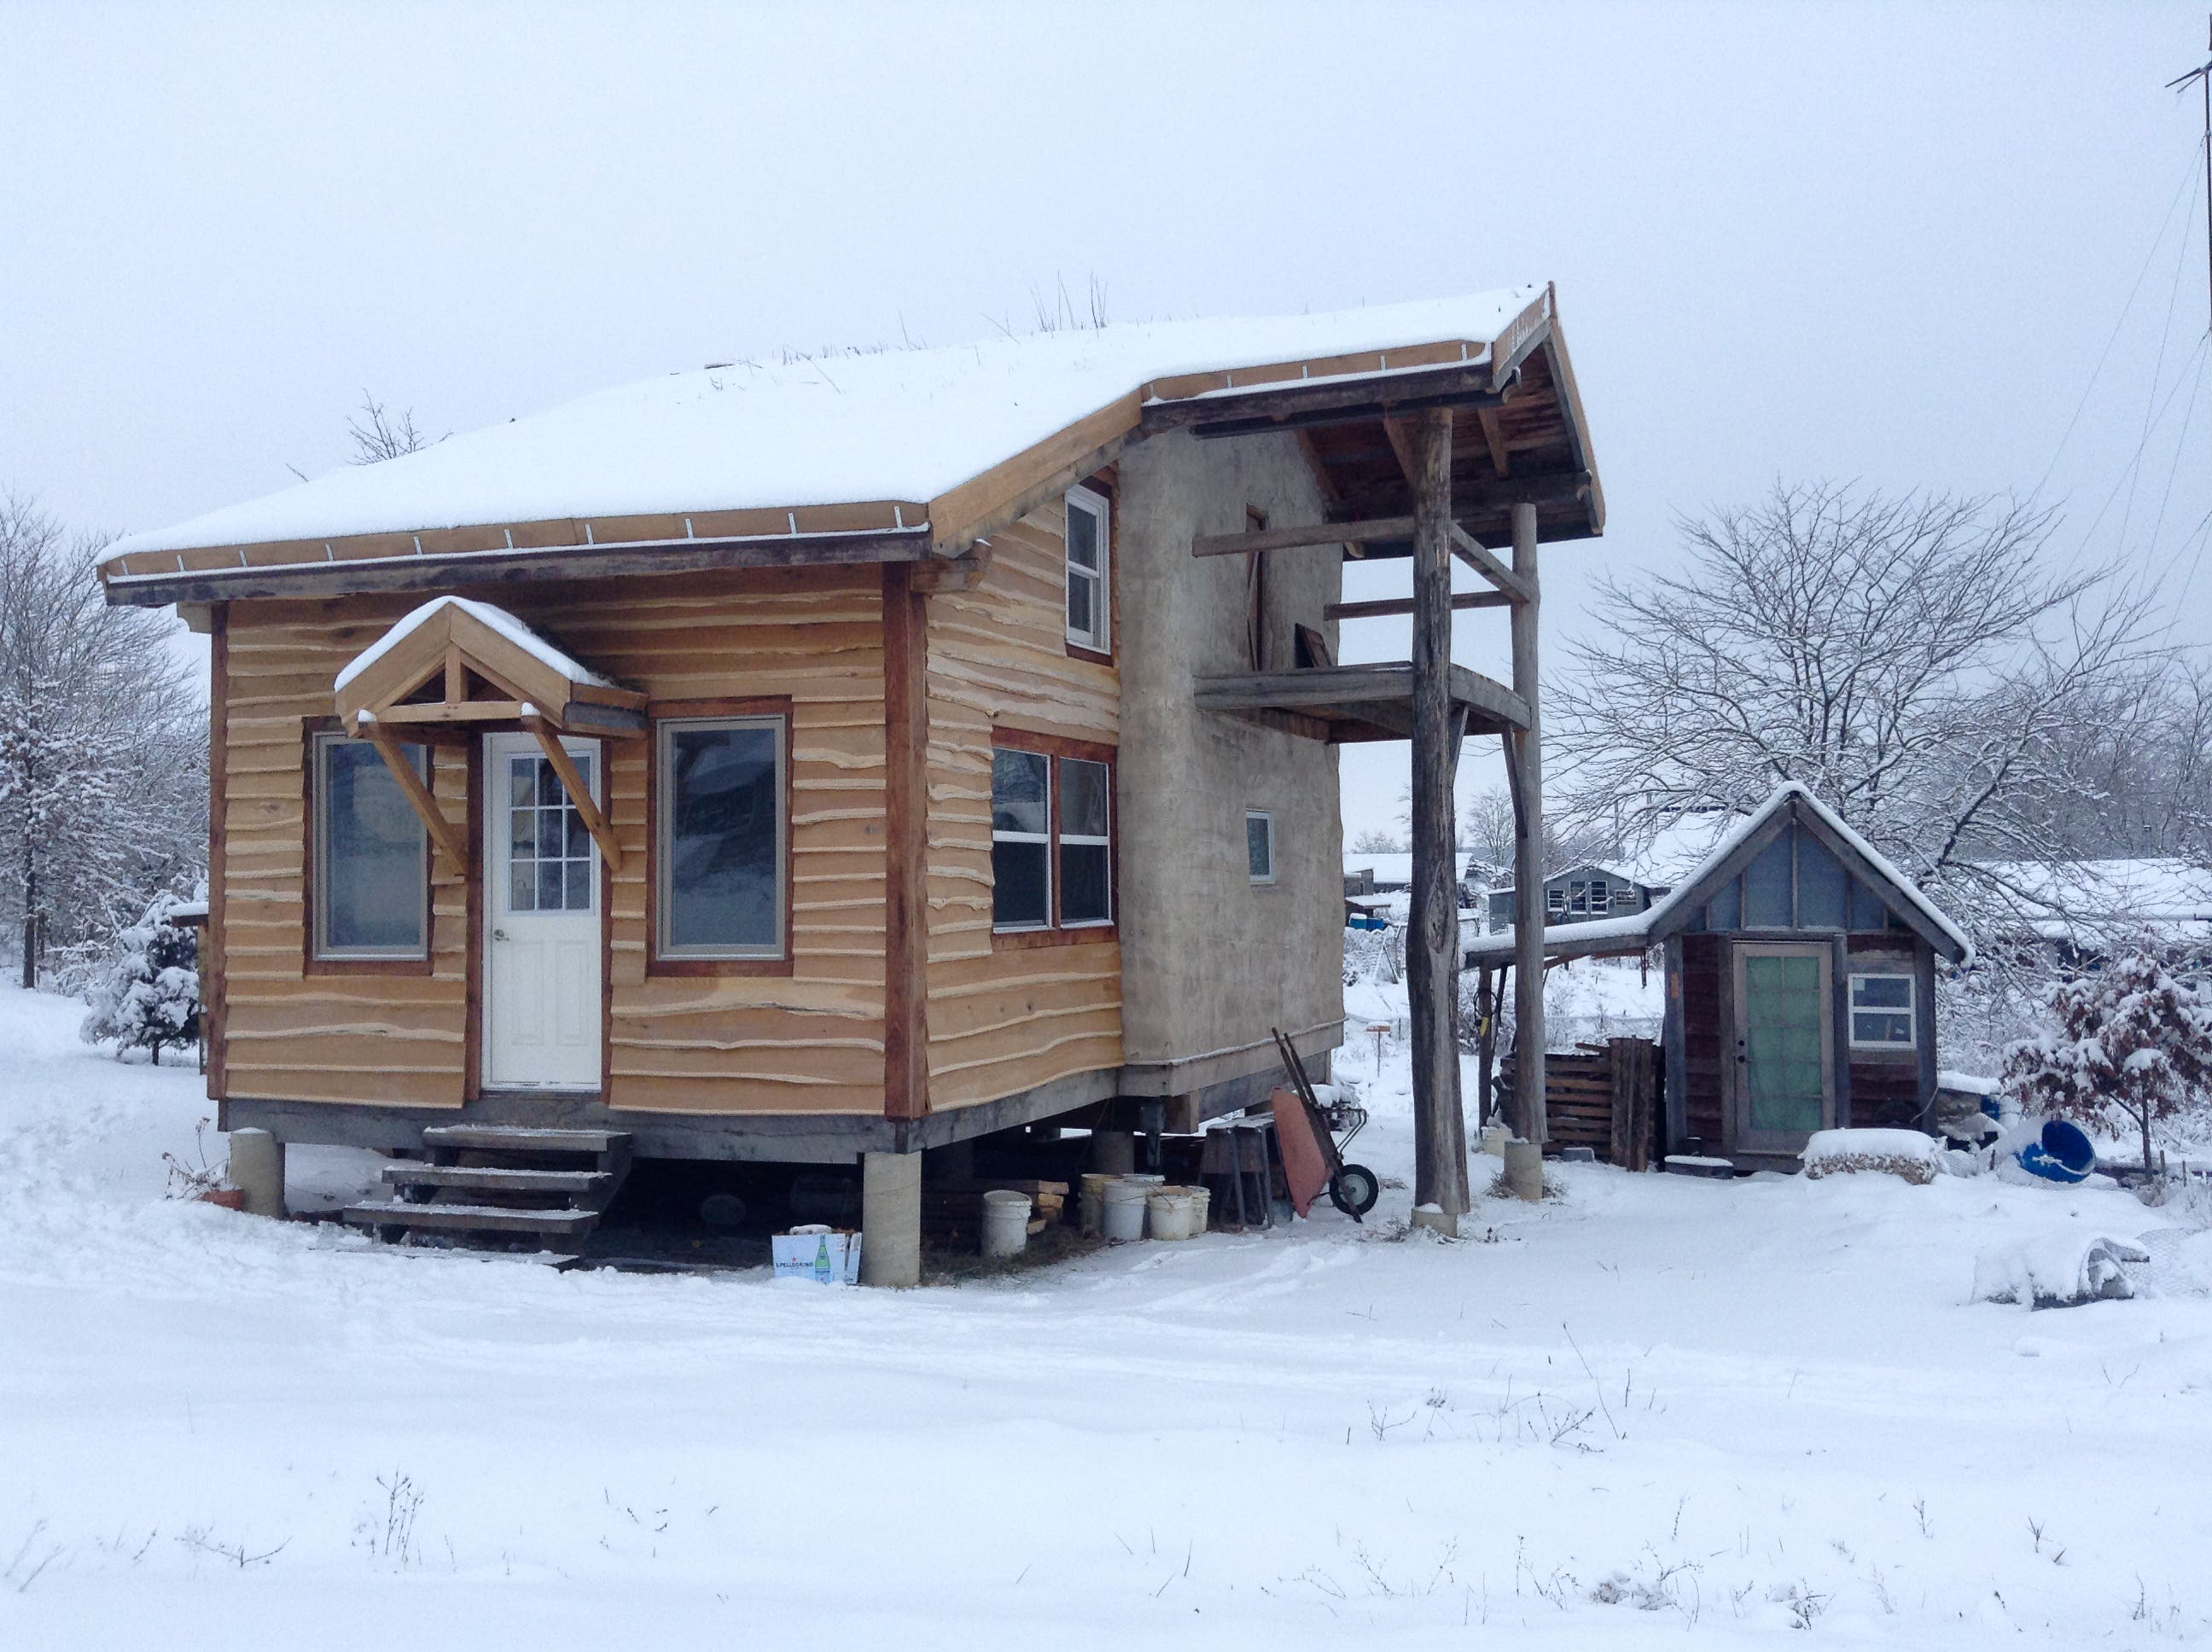 Top 7 sources for buying a tiny home tiny house blog for 2 story tiny house